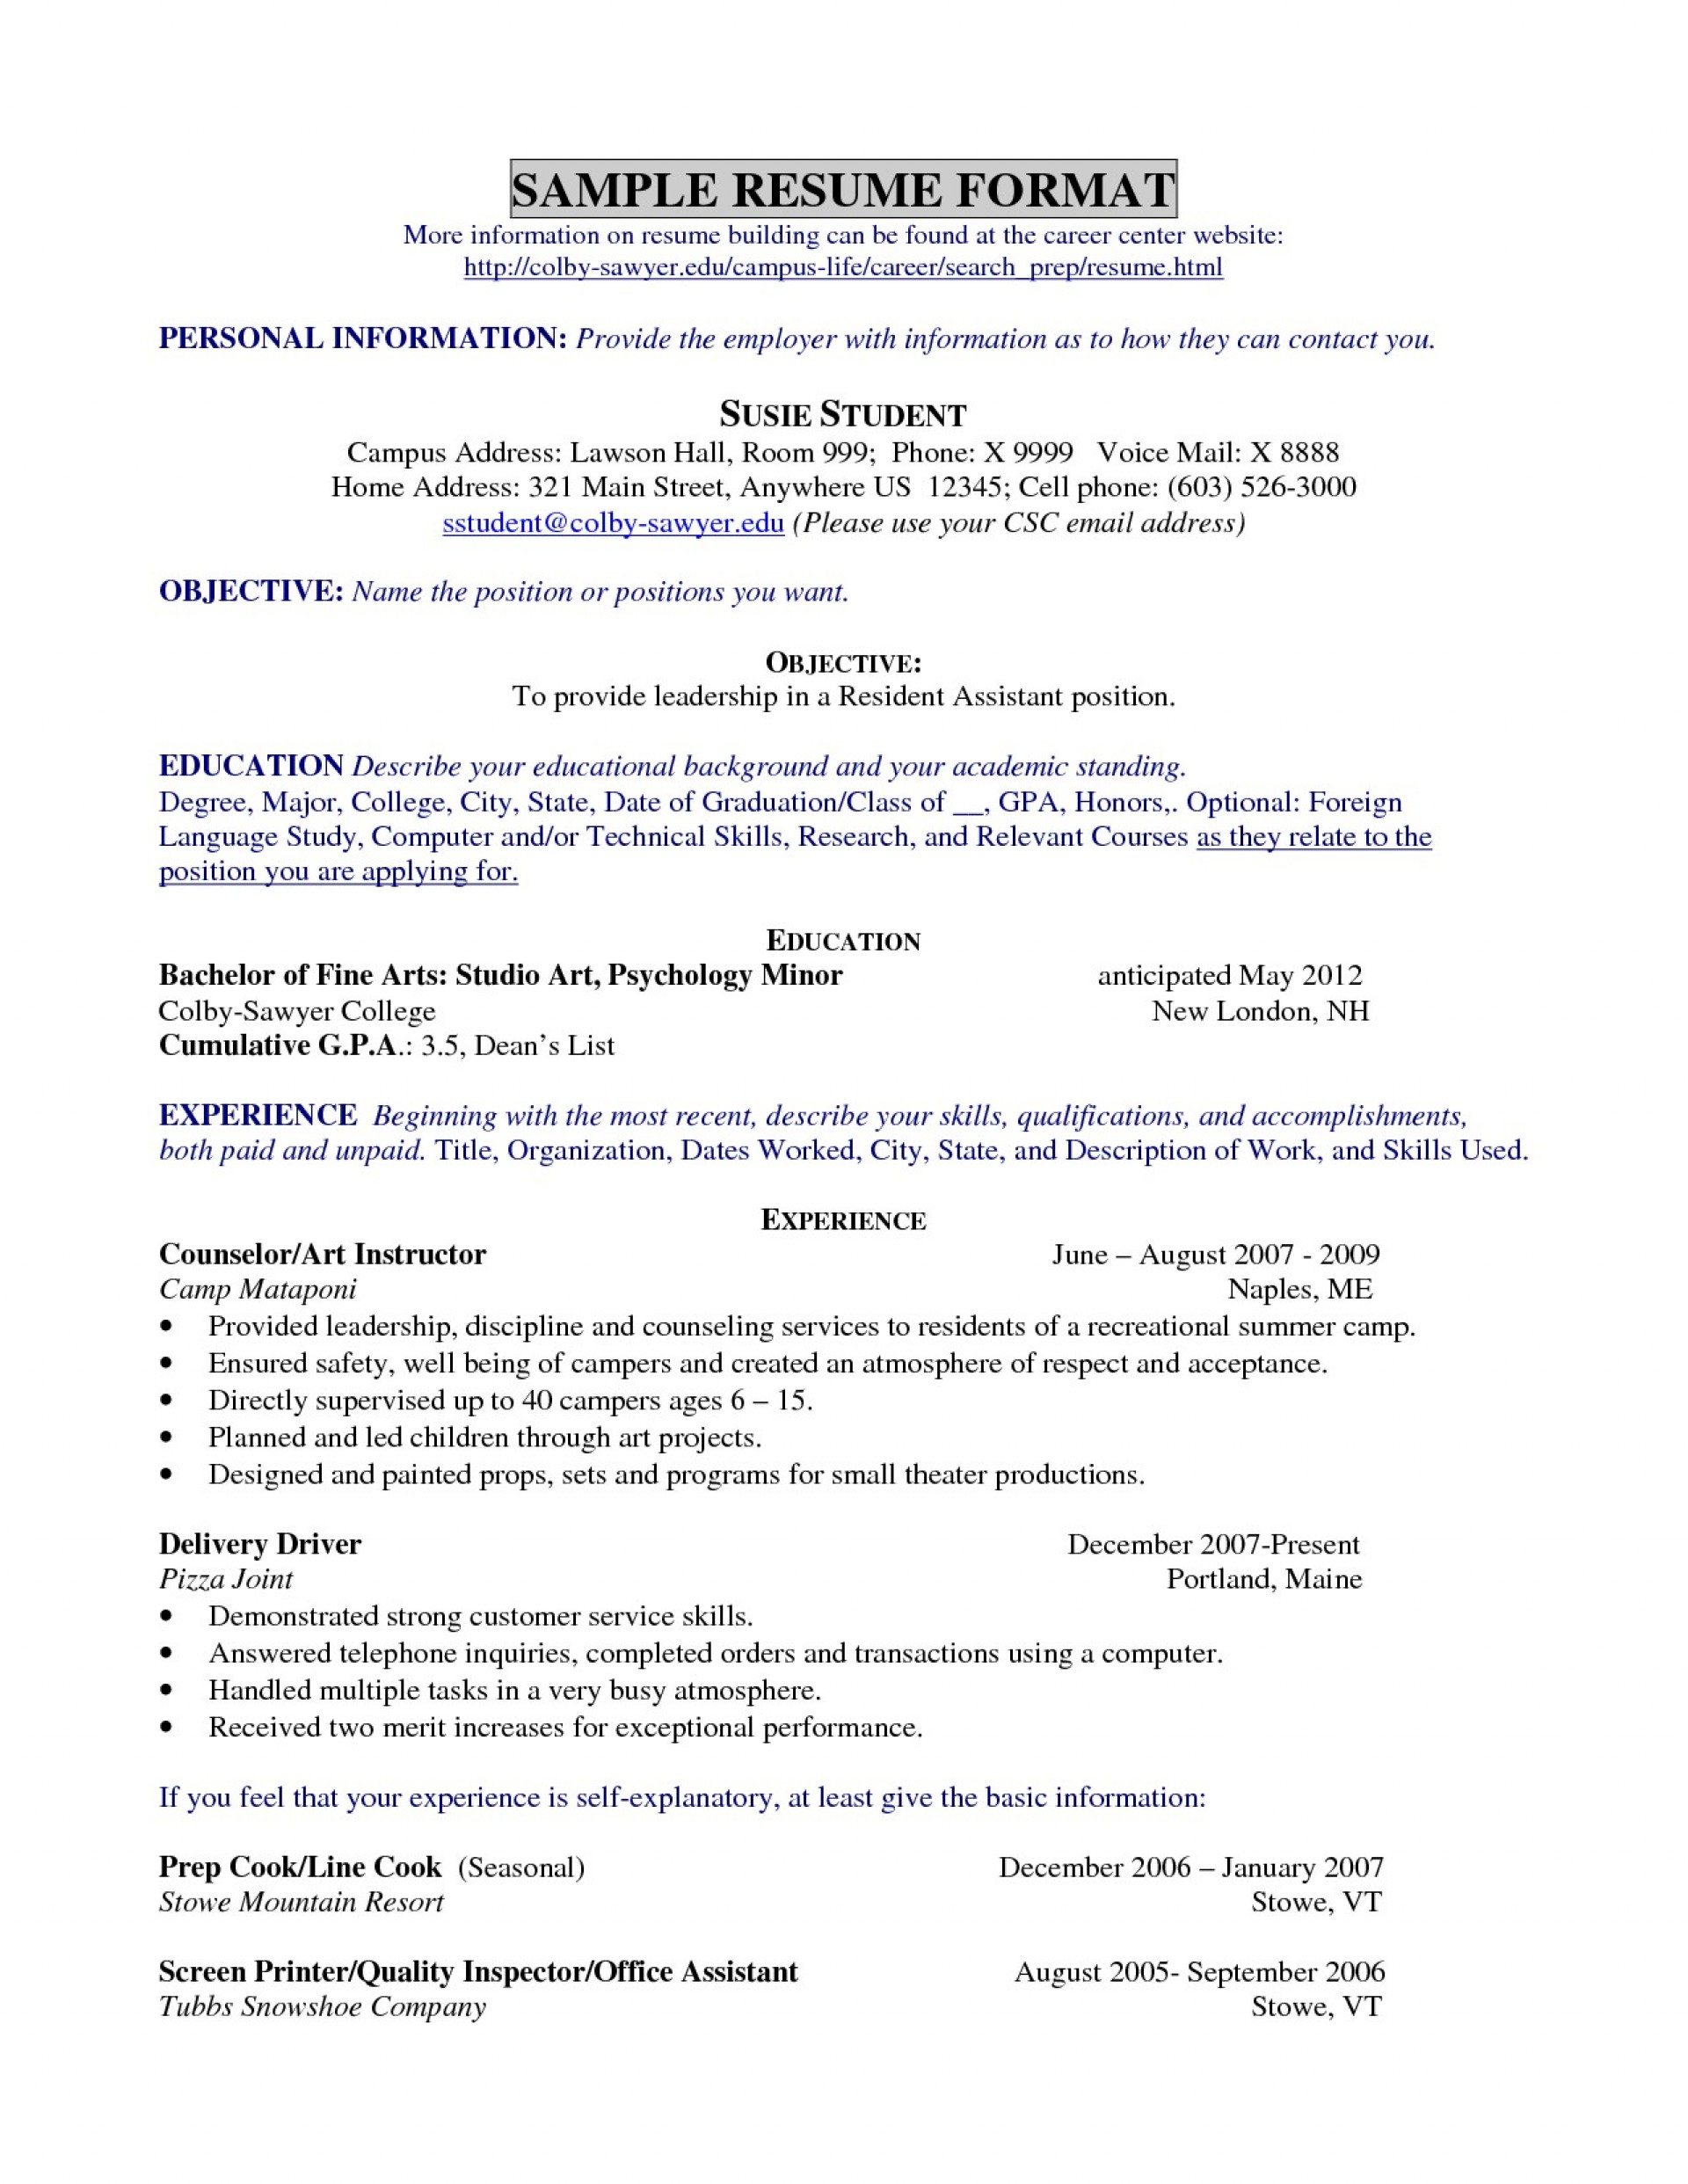 002 Pay Someone To Do My Essay Example Cheap Educationusa Best Place How Write Resume Formidable Need Review Should I 1920